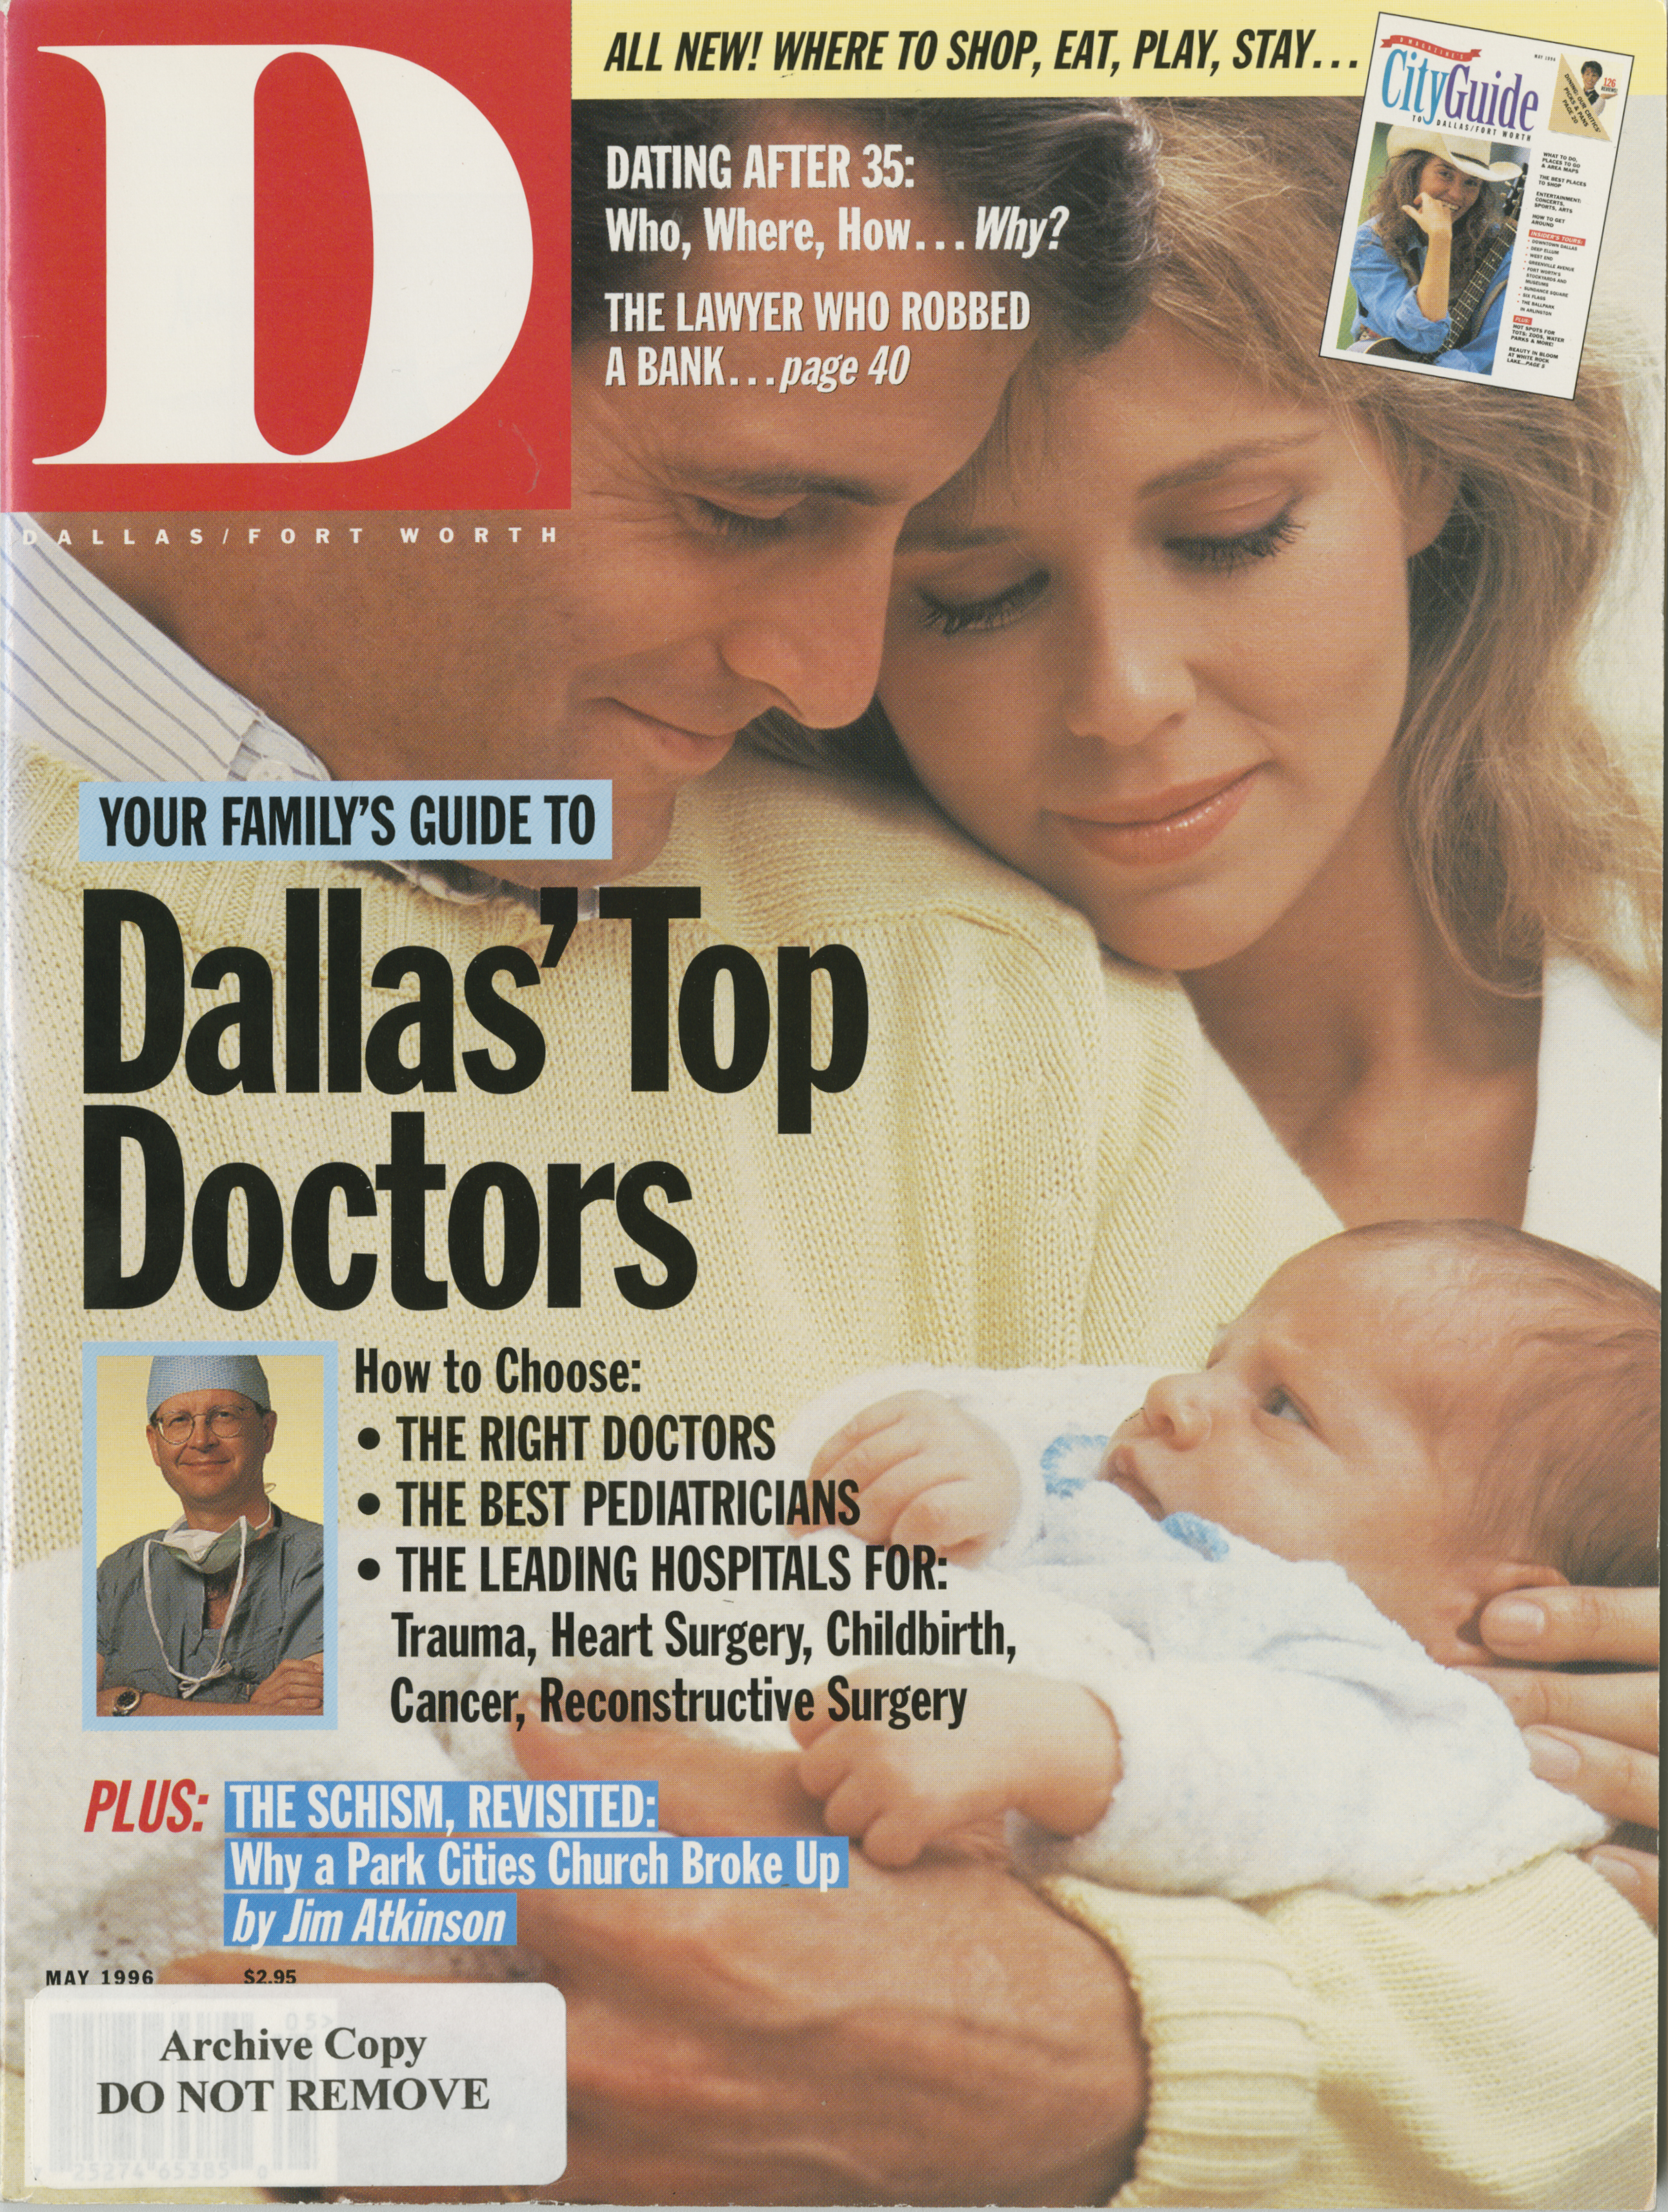 May 1996 cover